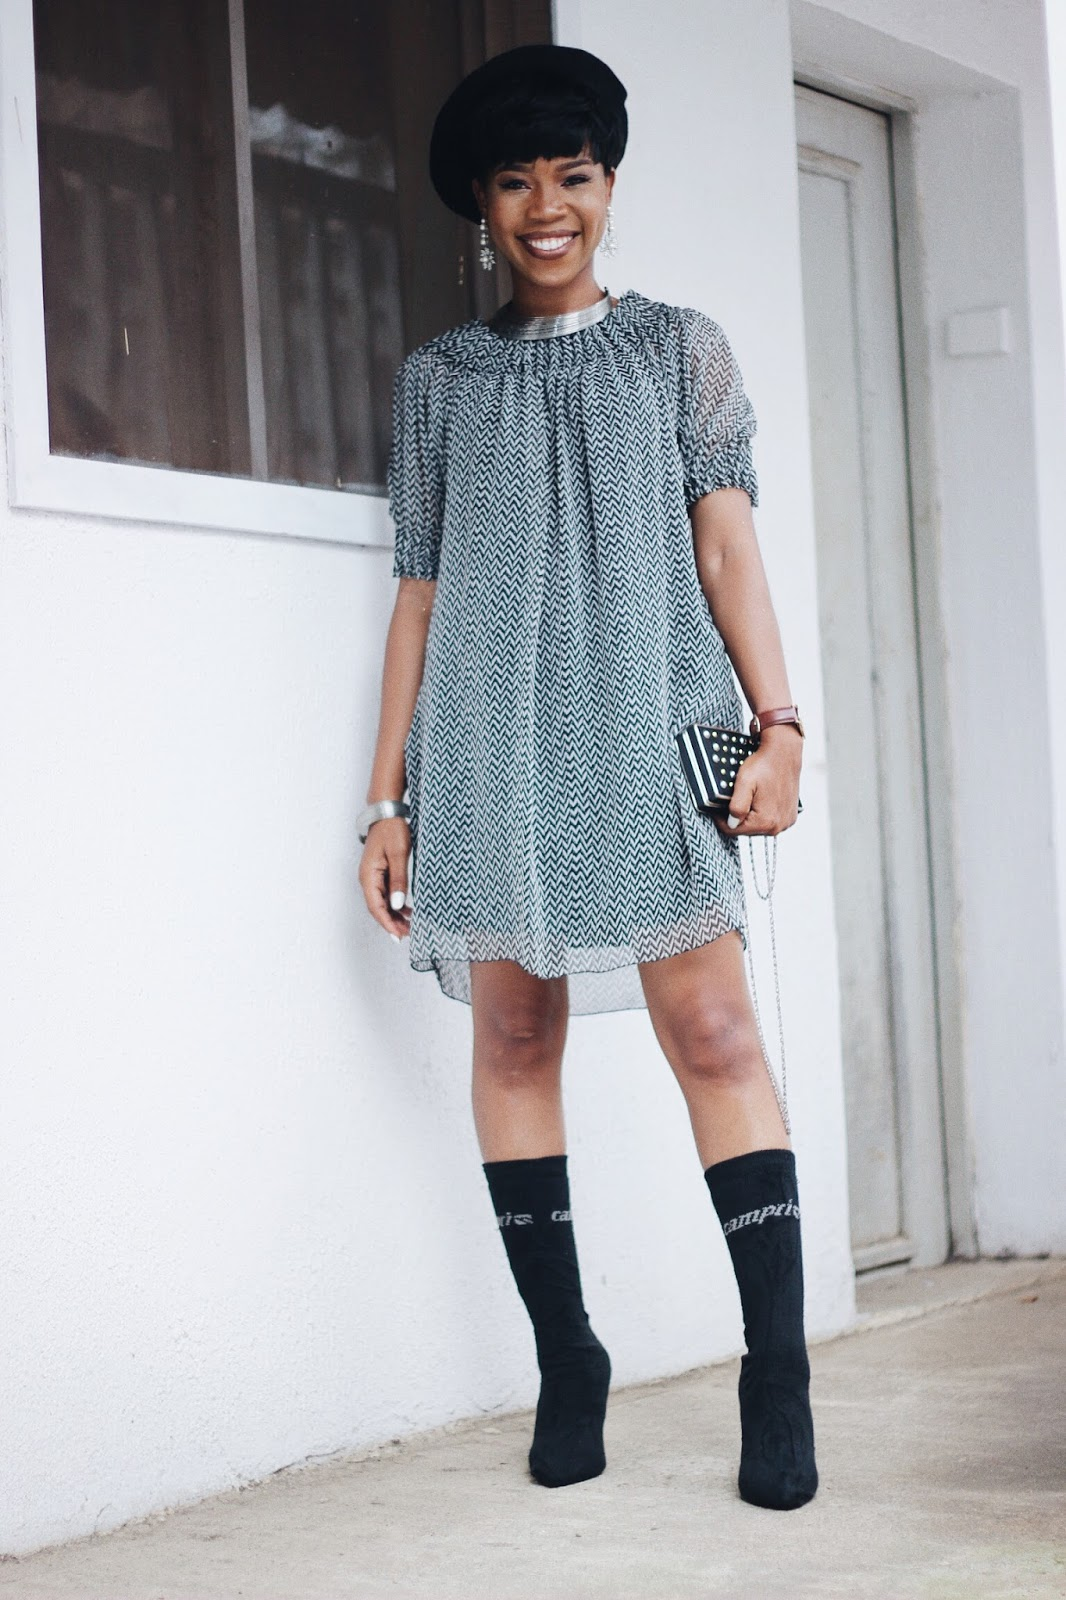 STYLING BLACK PATTERNED DRESS AND BOOT HEELS